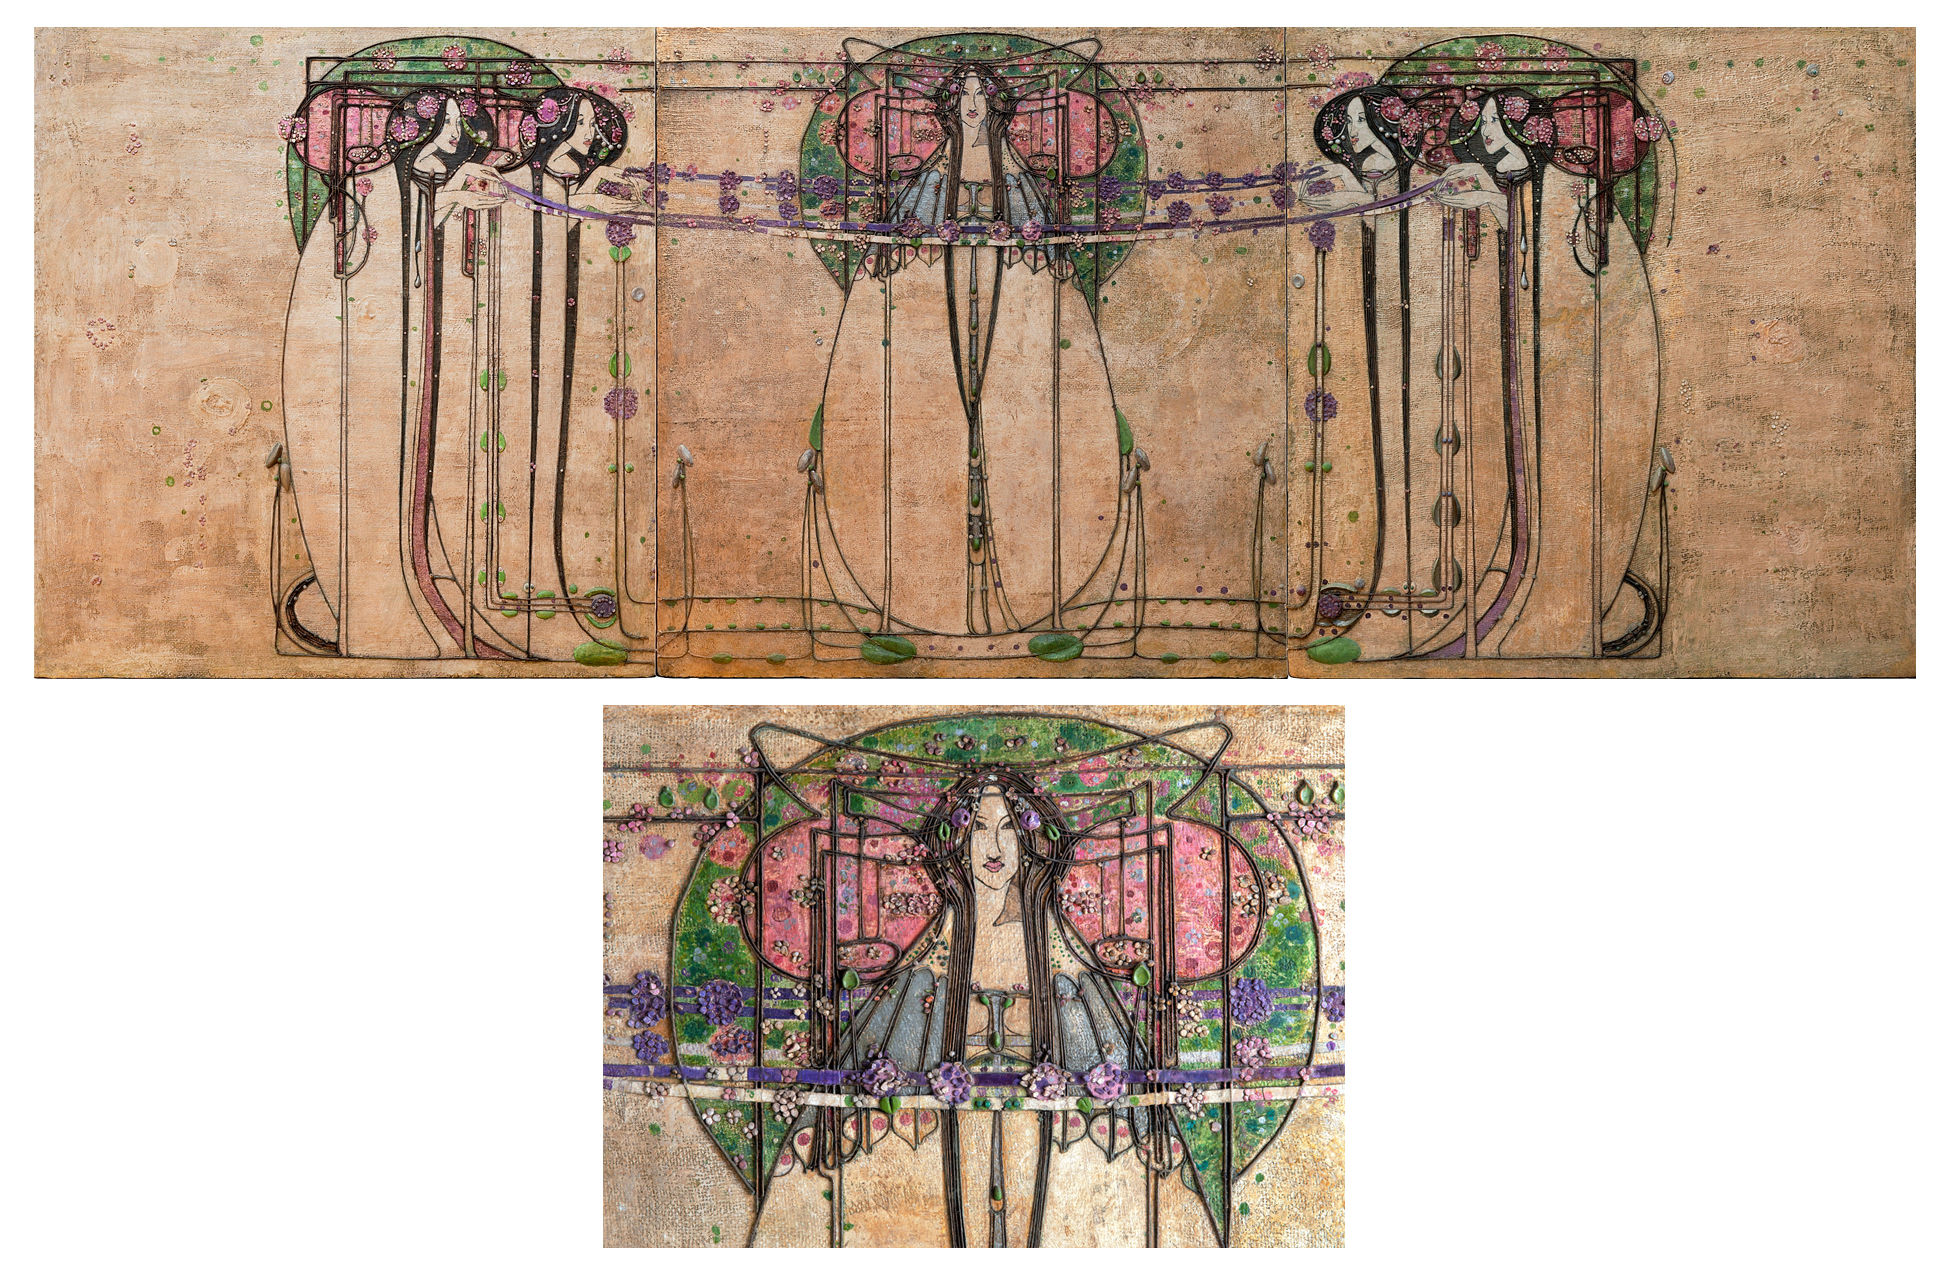 """""""The May Queen"""" by Margaret Macdonald Mackintosh, panel from the Ladies' Luncheon Room, Ingram Street Tea Rooms, 1900. Gesso, hessian, scrim, twine, glass beads, thread, mother-ofpearl and tin leaf. Glasgow Museums, acquired by Glasgow Corporation, as part of the Ingram Street Tearooms, 1950. © CSG CIC Glasgow Museums Collection. Courtesy American Federation of Arts."""